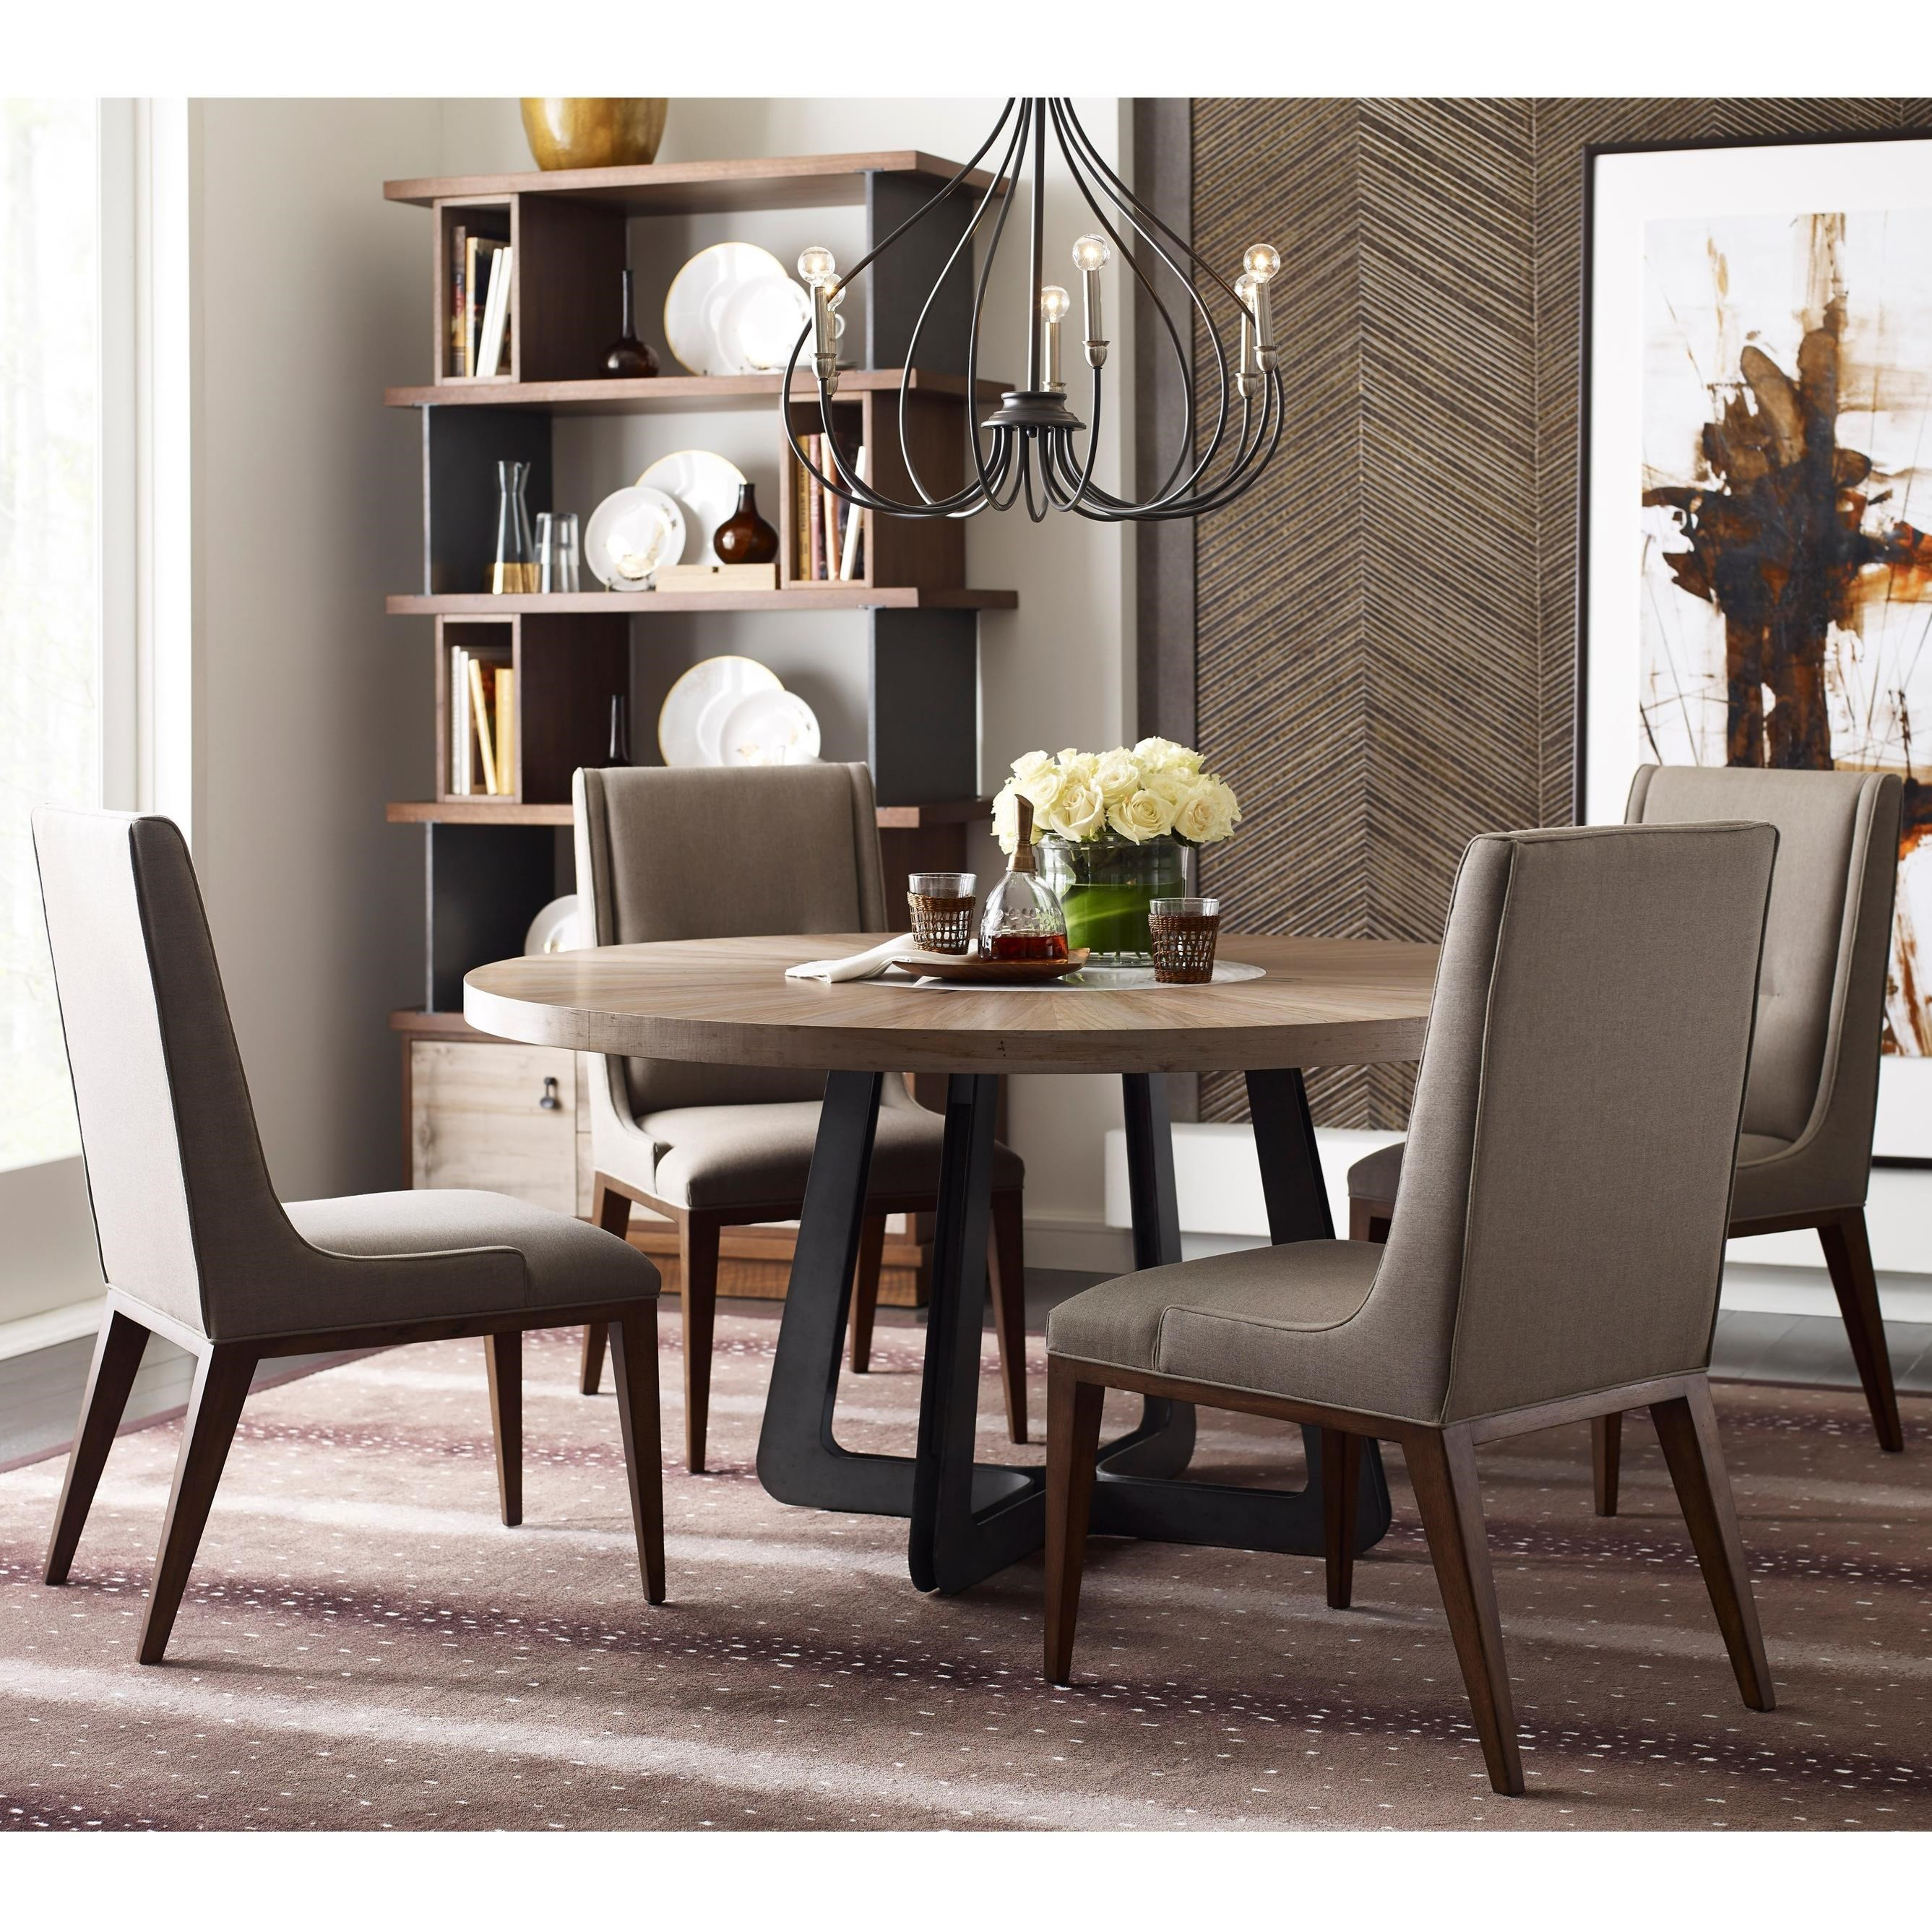 american drew modern synergyround table and chair set furniture chair set0 furniture